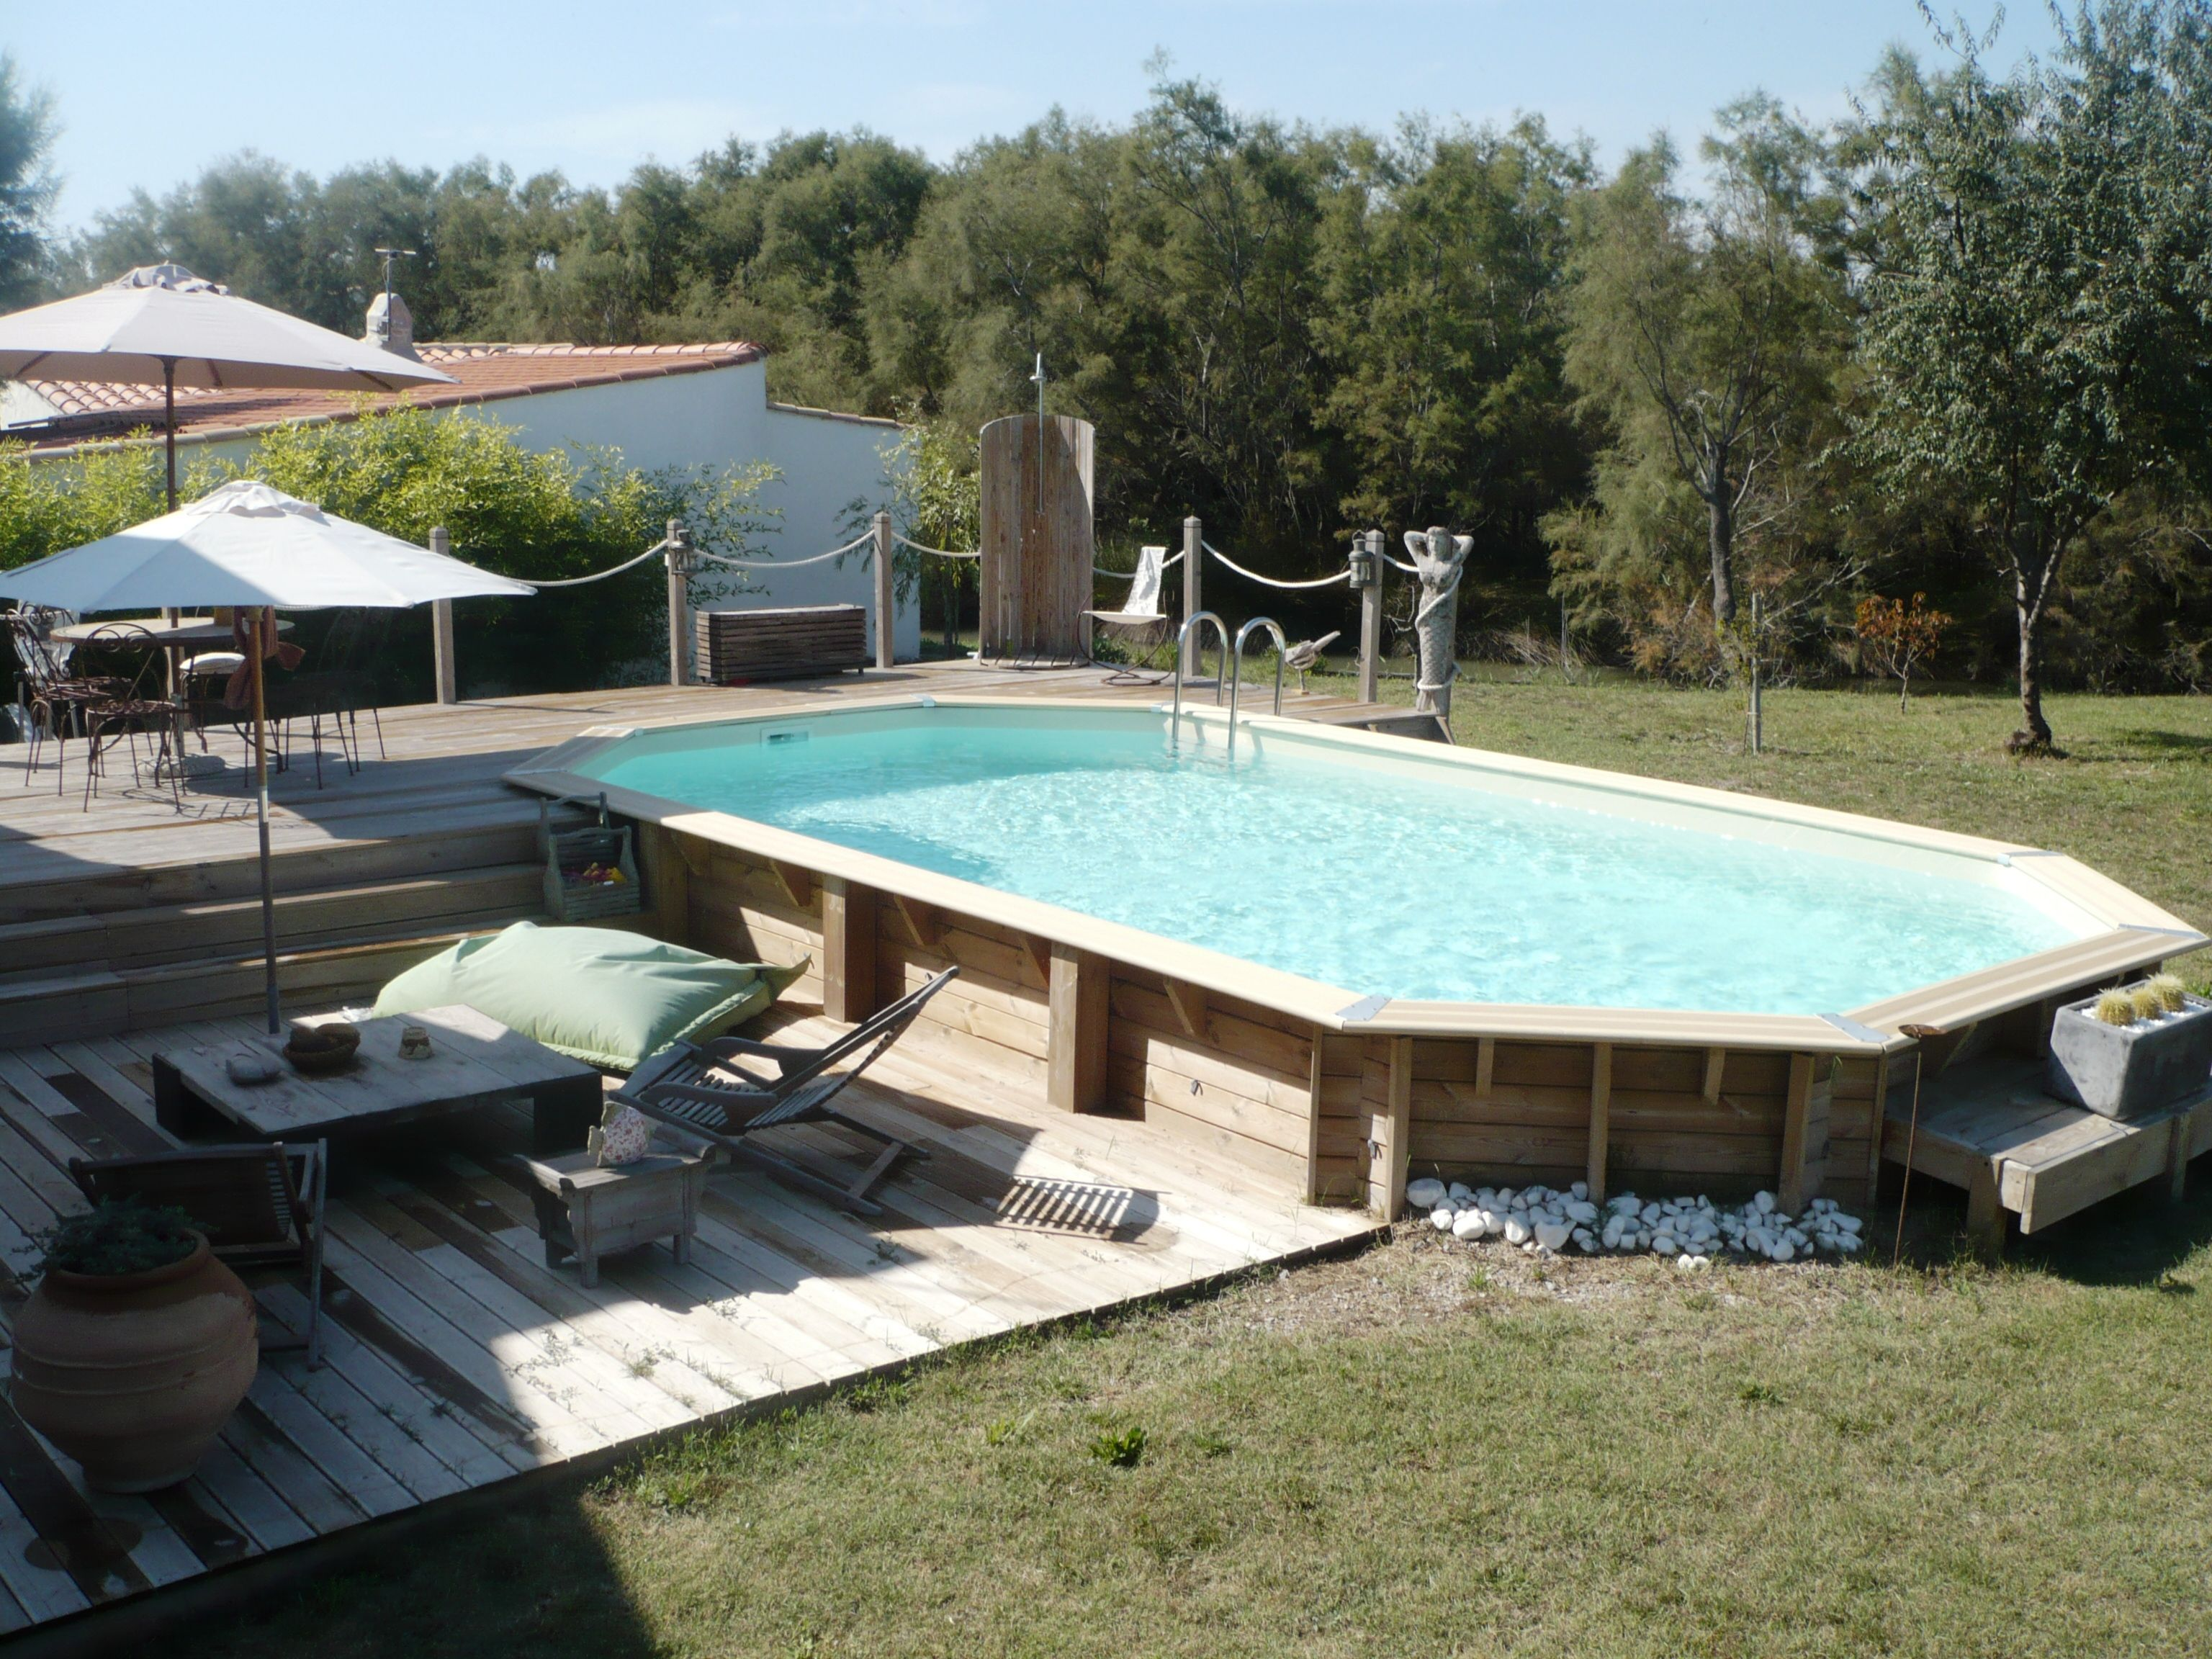 Terrasse piscine semi enterree home sweet home for Piscine semi enterre bois